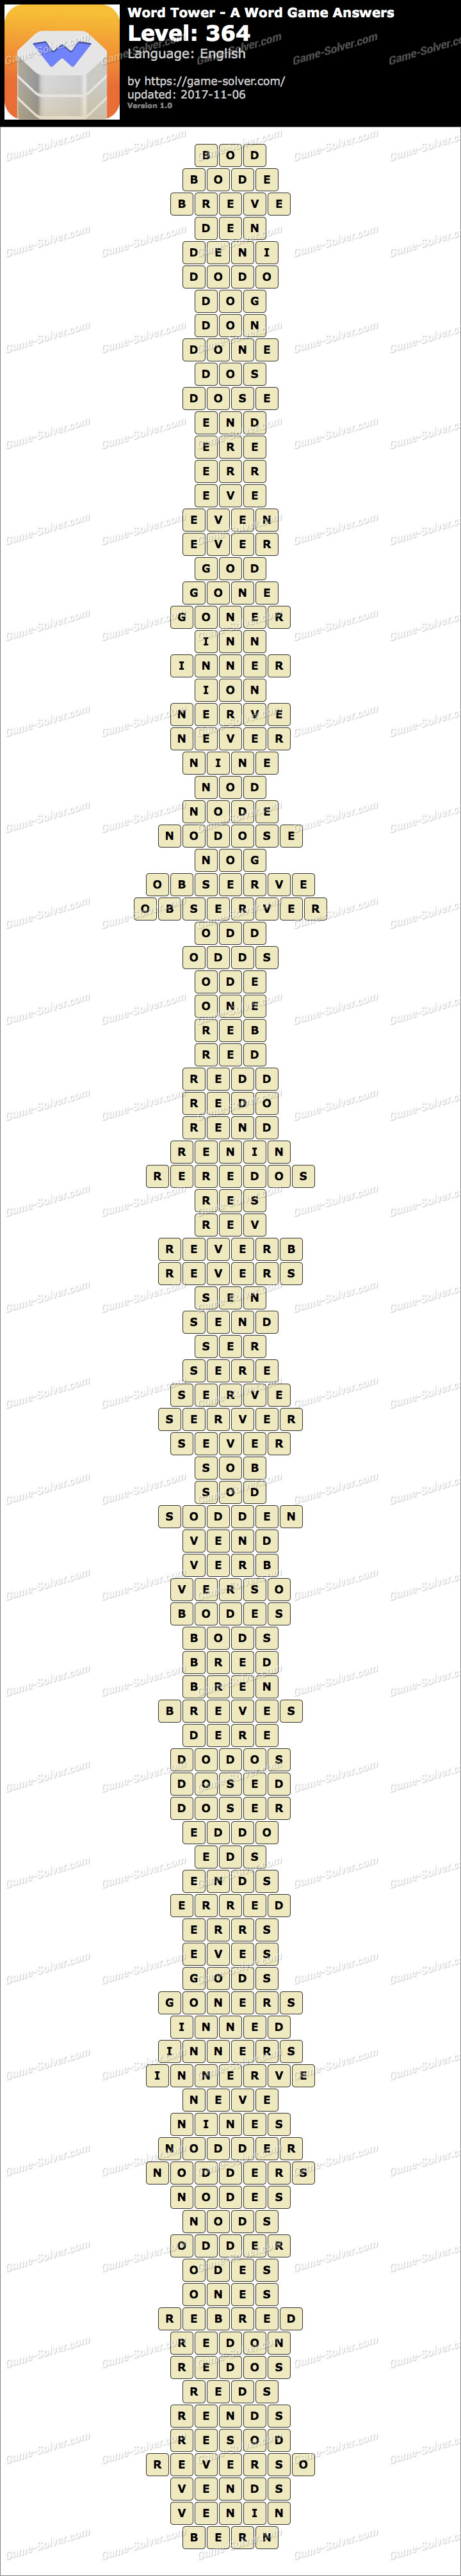 Word Tower Level 364 Answers